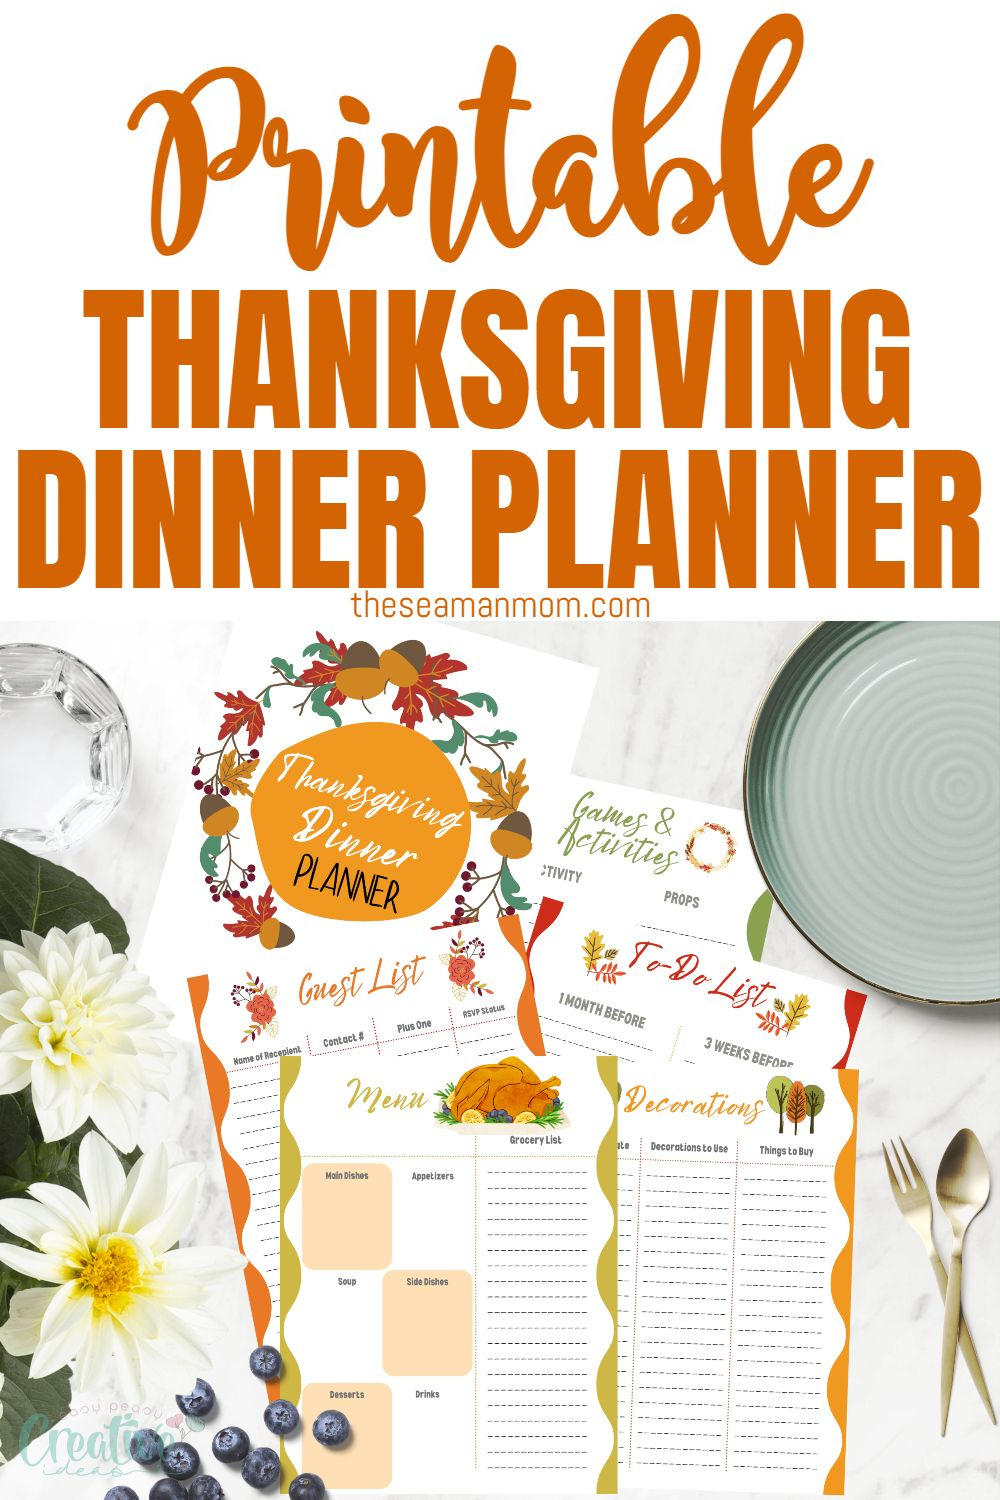 Get ready to celebrate Thanksgiving with your family and friends this year with the help of this Thanksgiving planner! This Thanksgiving dinner planner will help you plan out what to do before, during, and after Thanksgiving so that all of your guests have an enjoyable experience! via @petroneagu